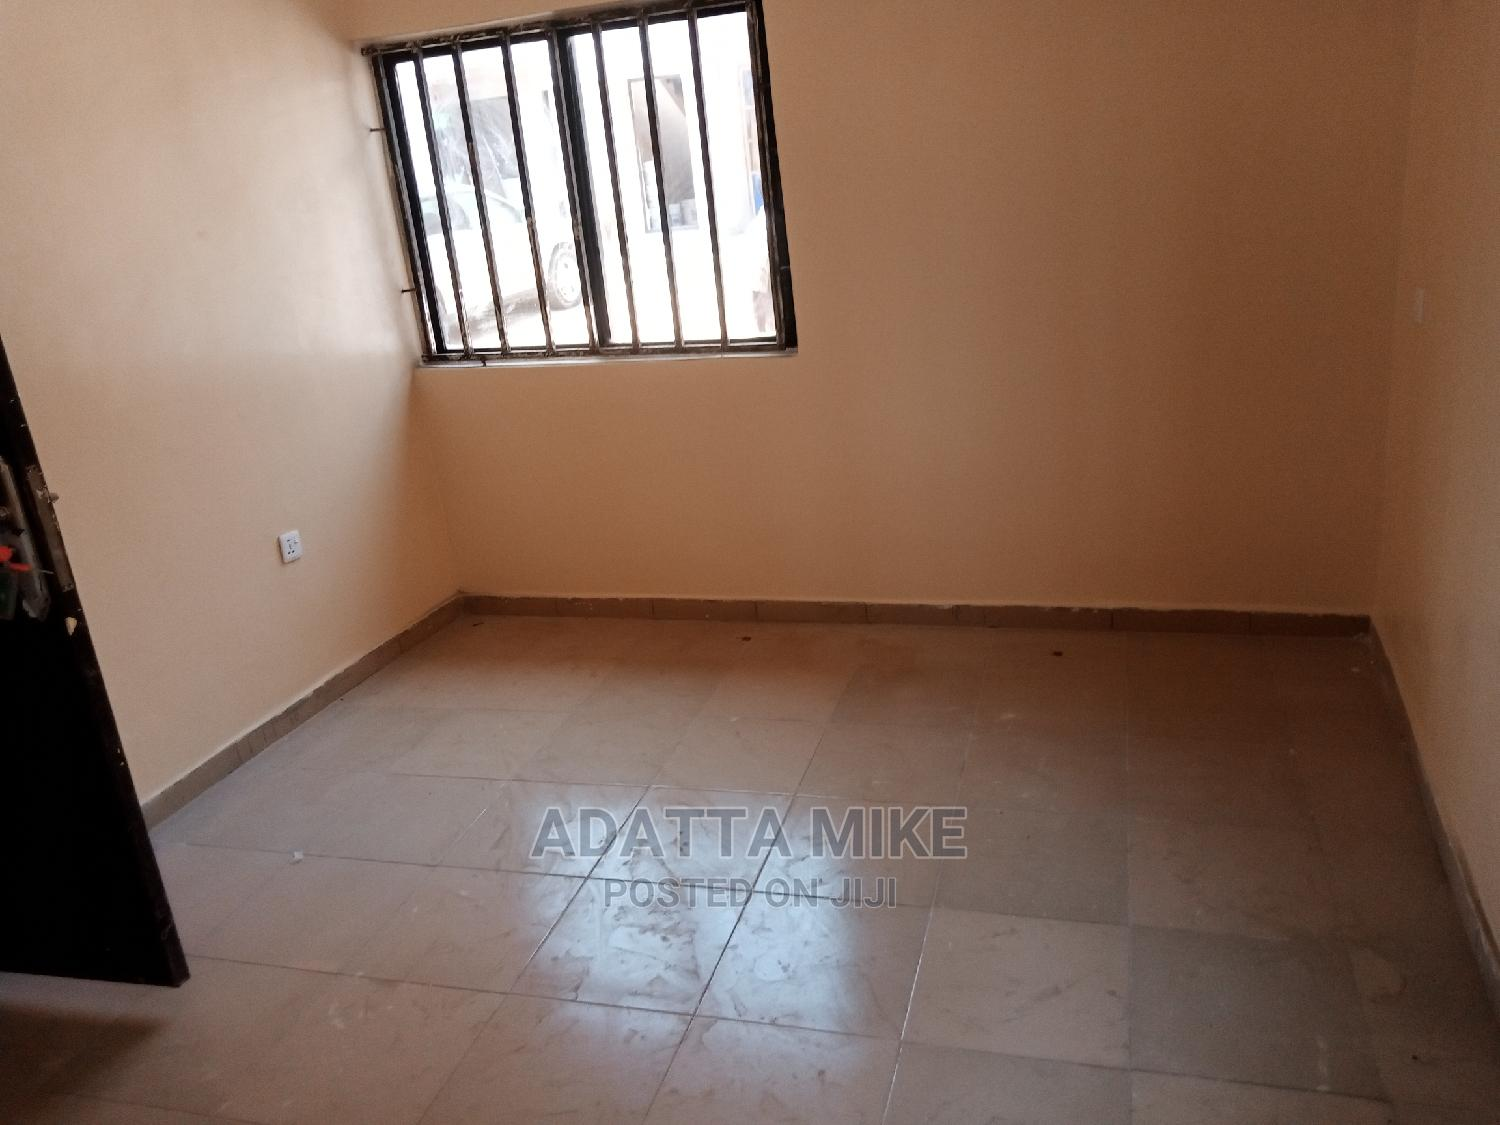 2bdrm Block of Flats in Phase2 Site 2, Kubwa for rent   Houses & Apartments For Rent for sale in Kubwa, Abuja (FCT) State, Nigeria